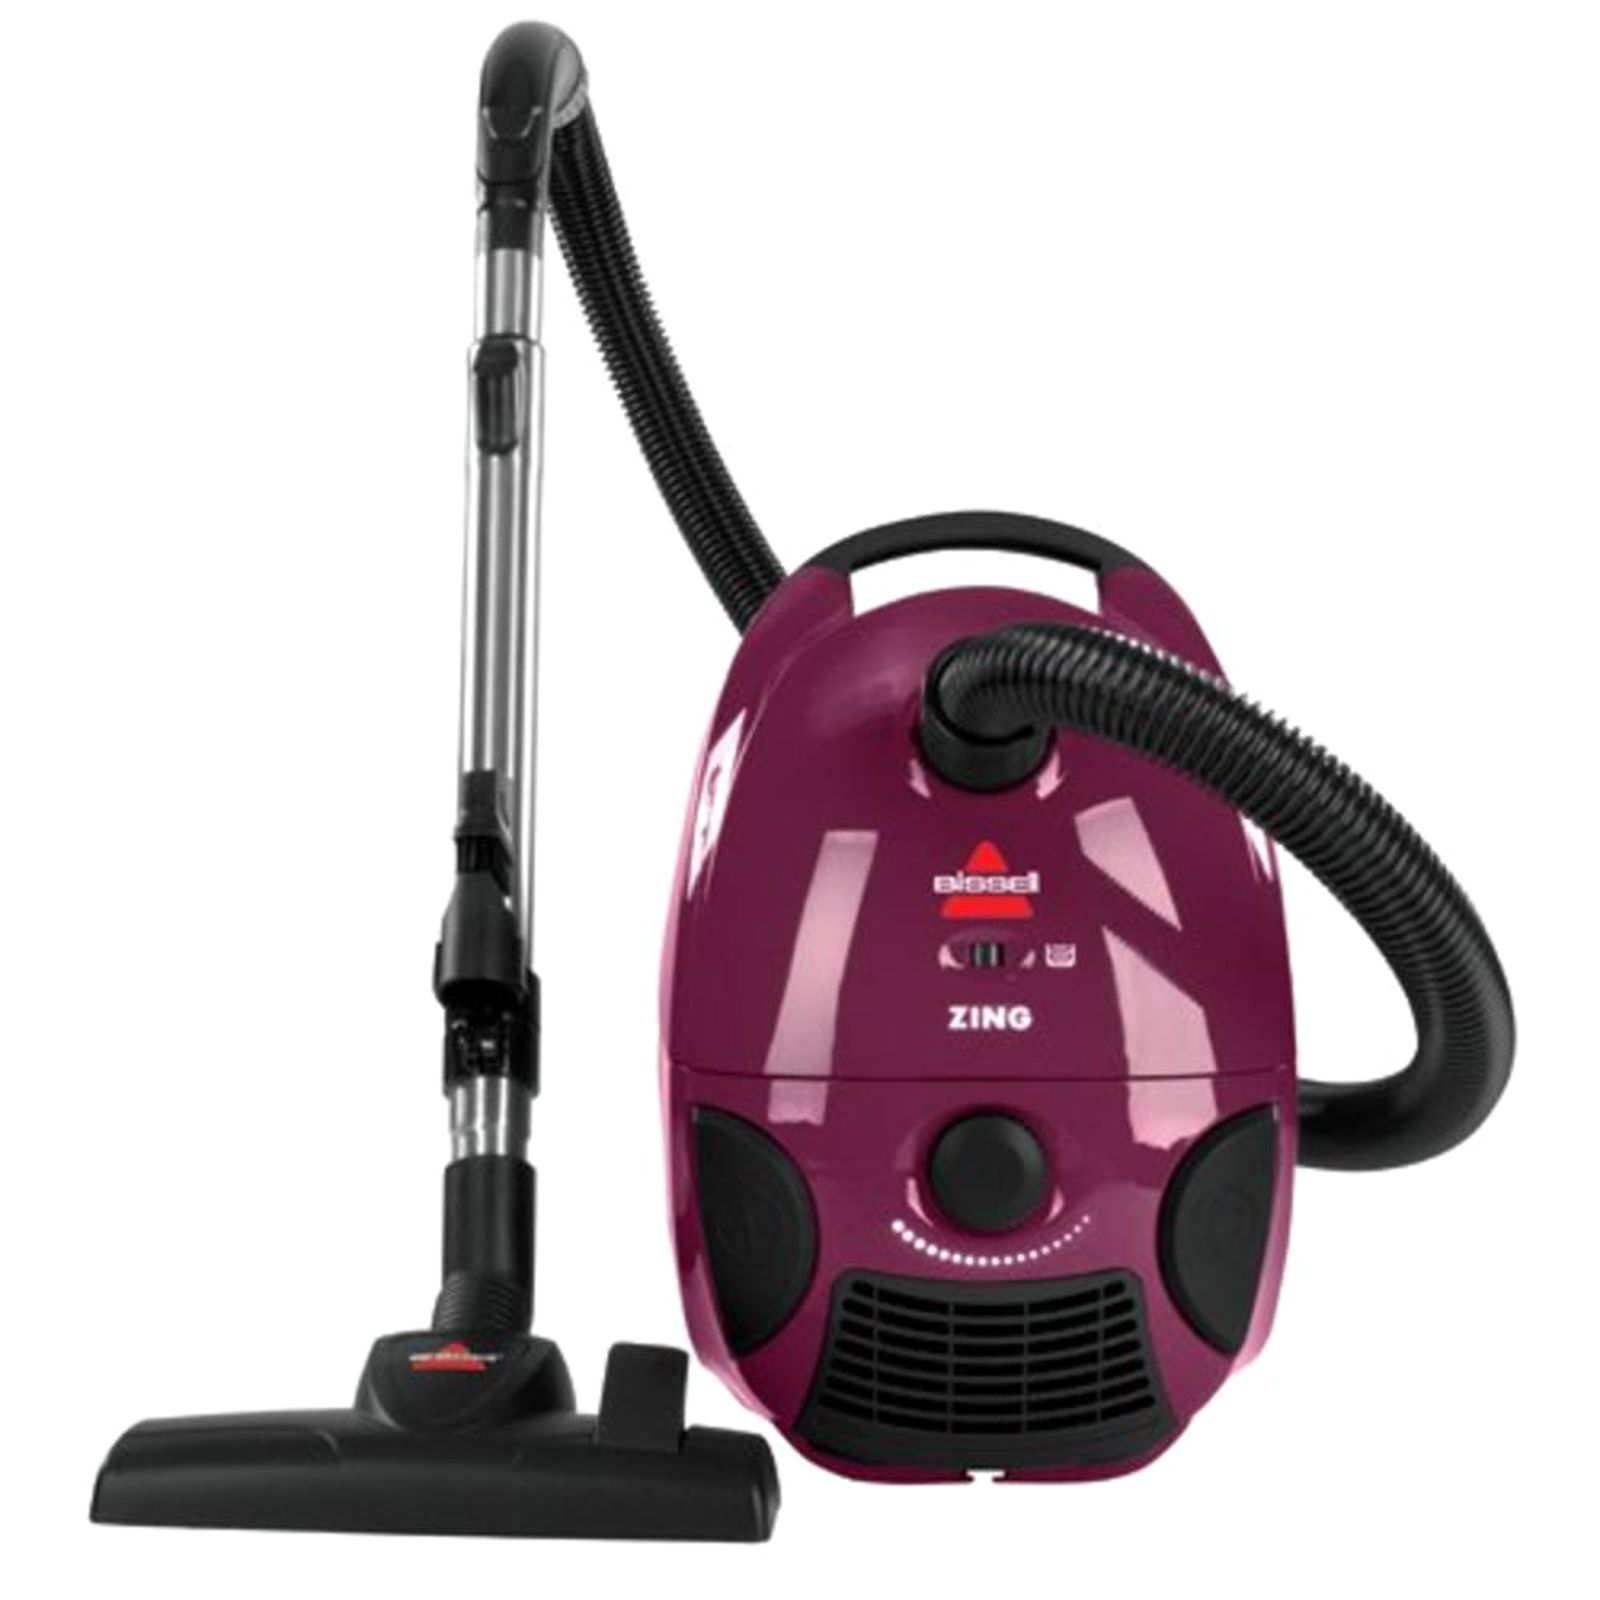 Everything You Need to Know About Buying a Vacuum